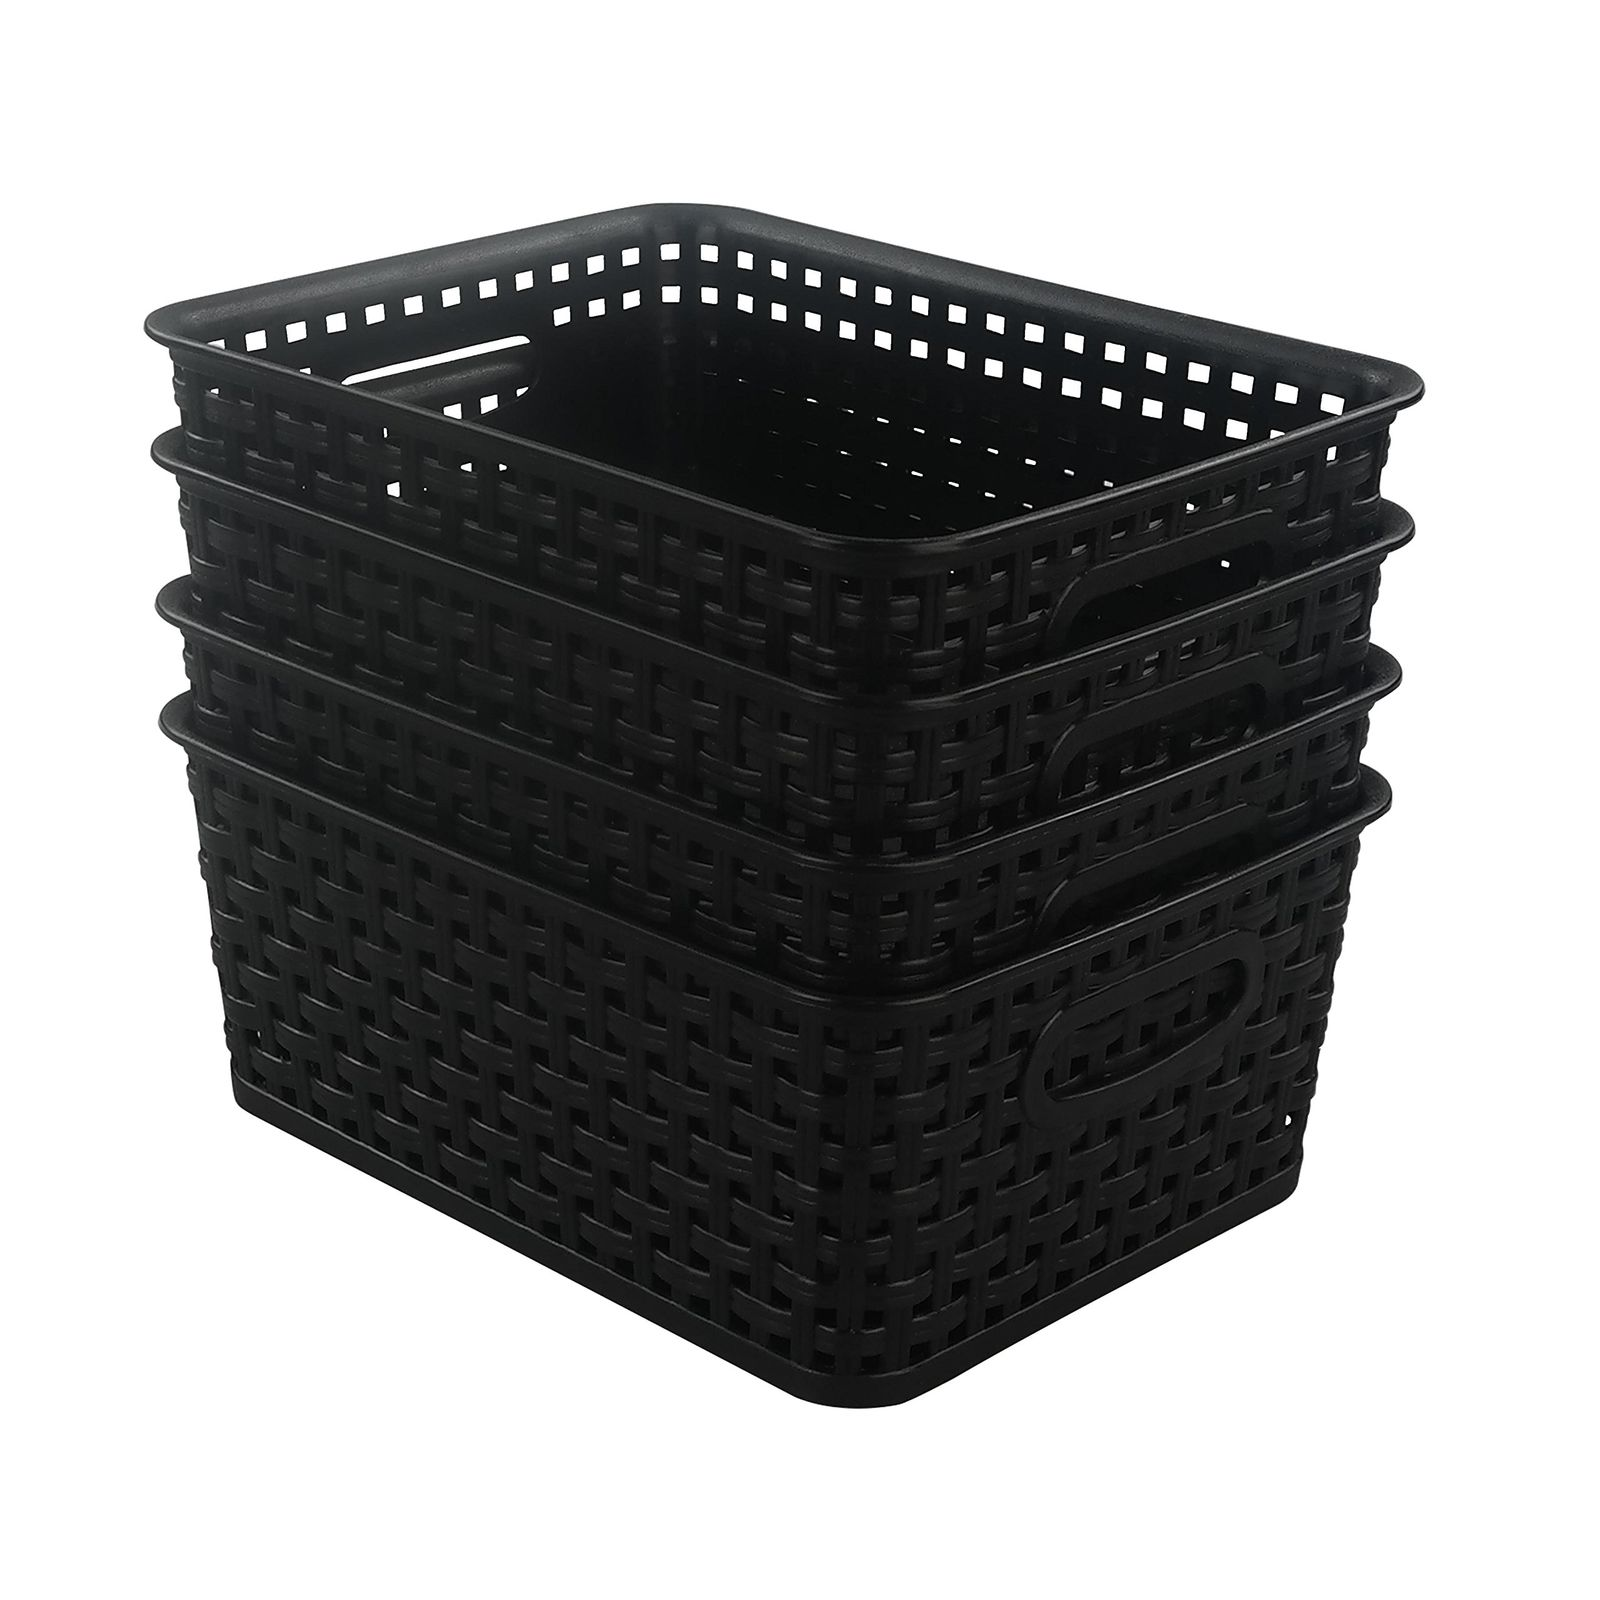 Morcte Plastic Storage Basket, Food Pantry Closet Shelves, Freezer Organizer 1